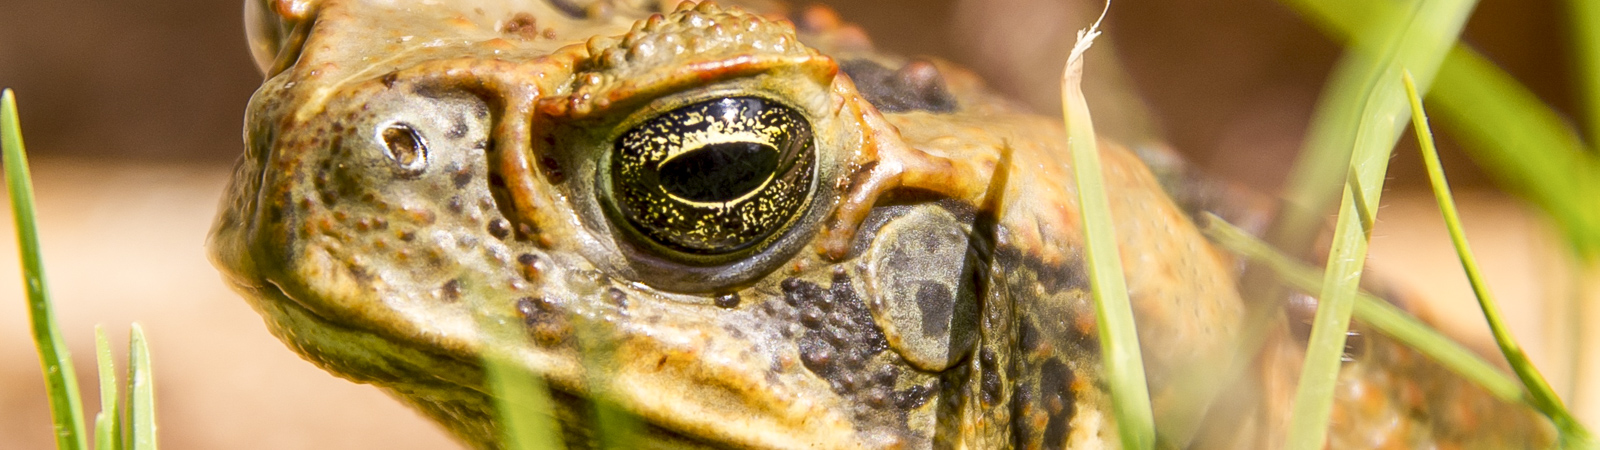 Every bit counts cane toads small landholders